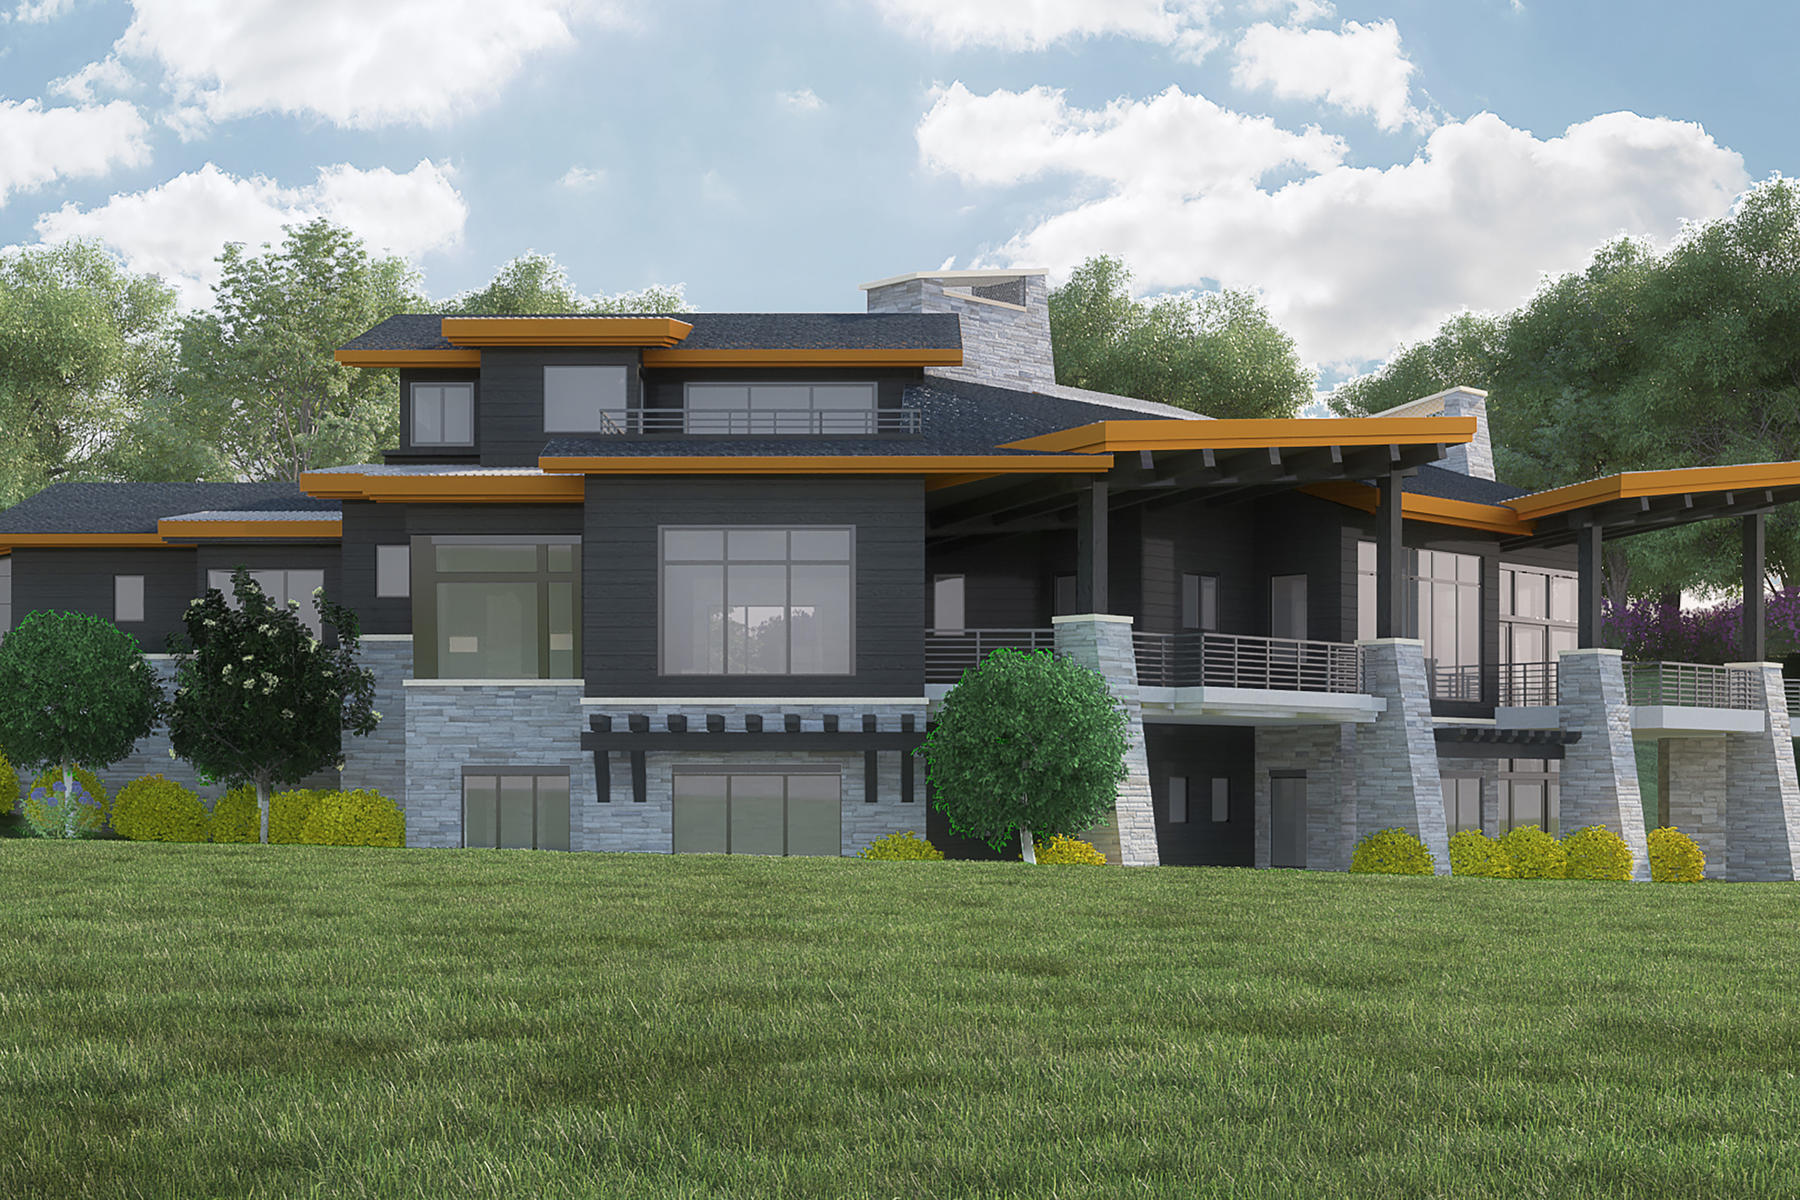 Single Family Homes for Sale at Exclusive Red Cloud New Construction with Perfect Ski Access 68 Red Cloud Trail, Park City, Utah 84060 United States